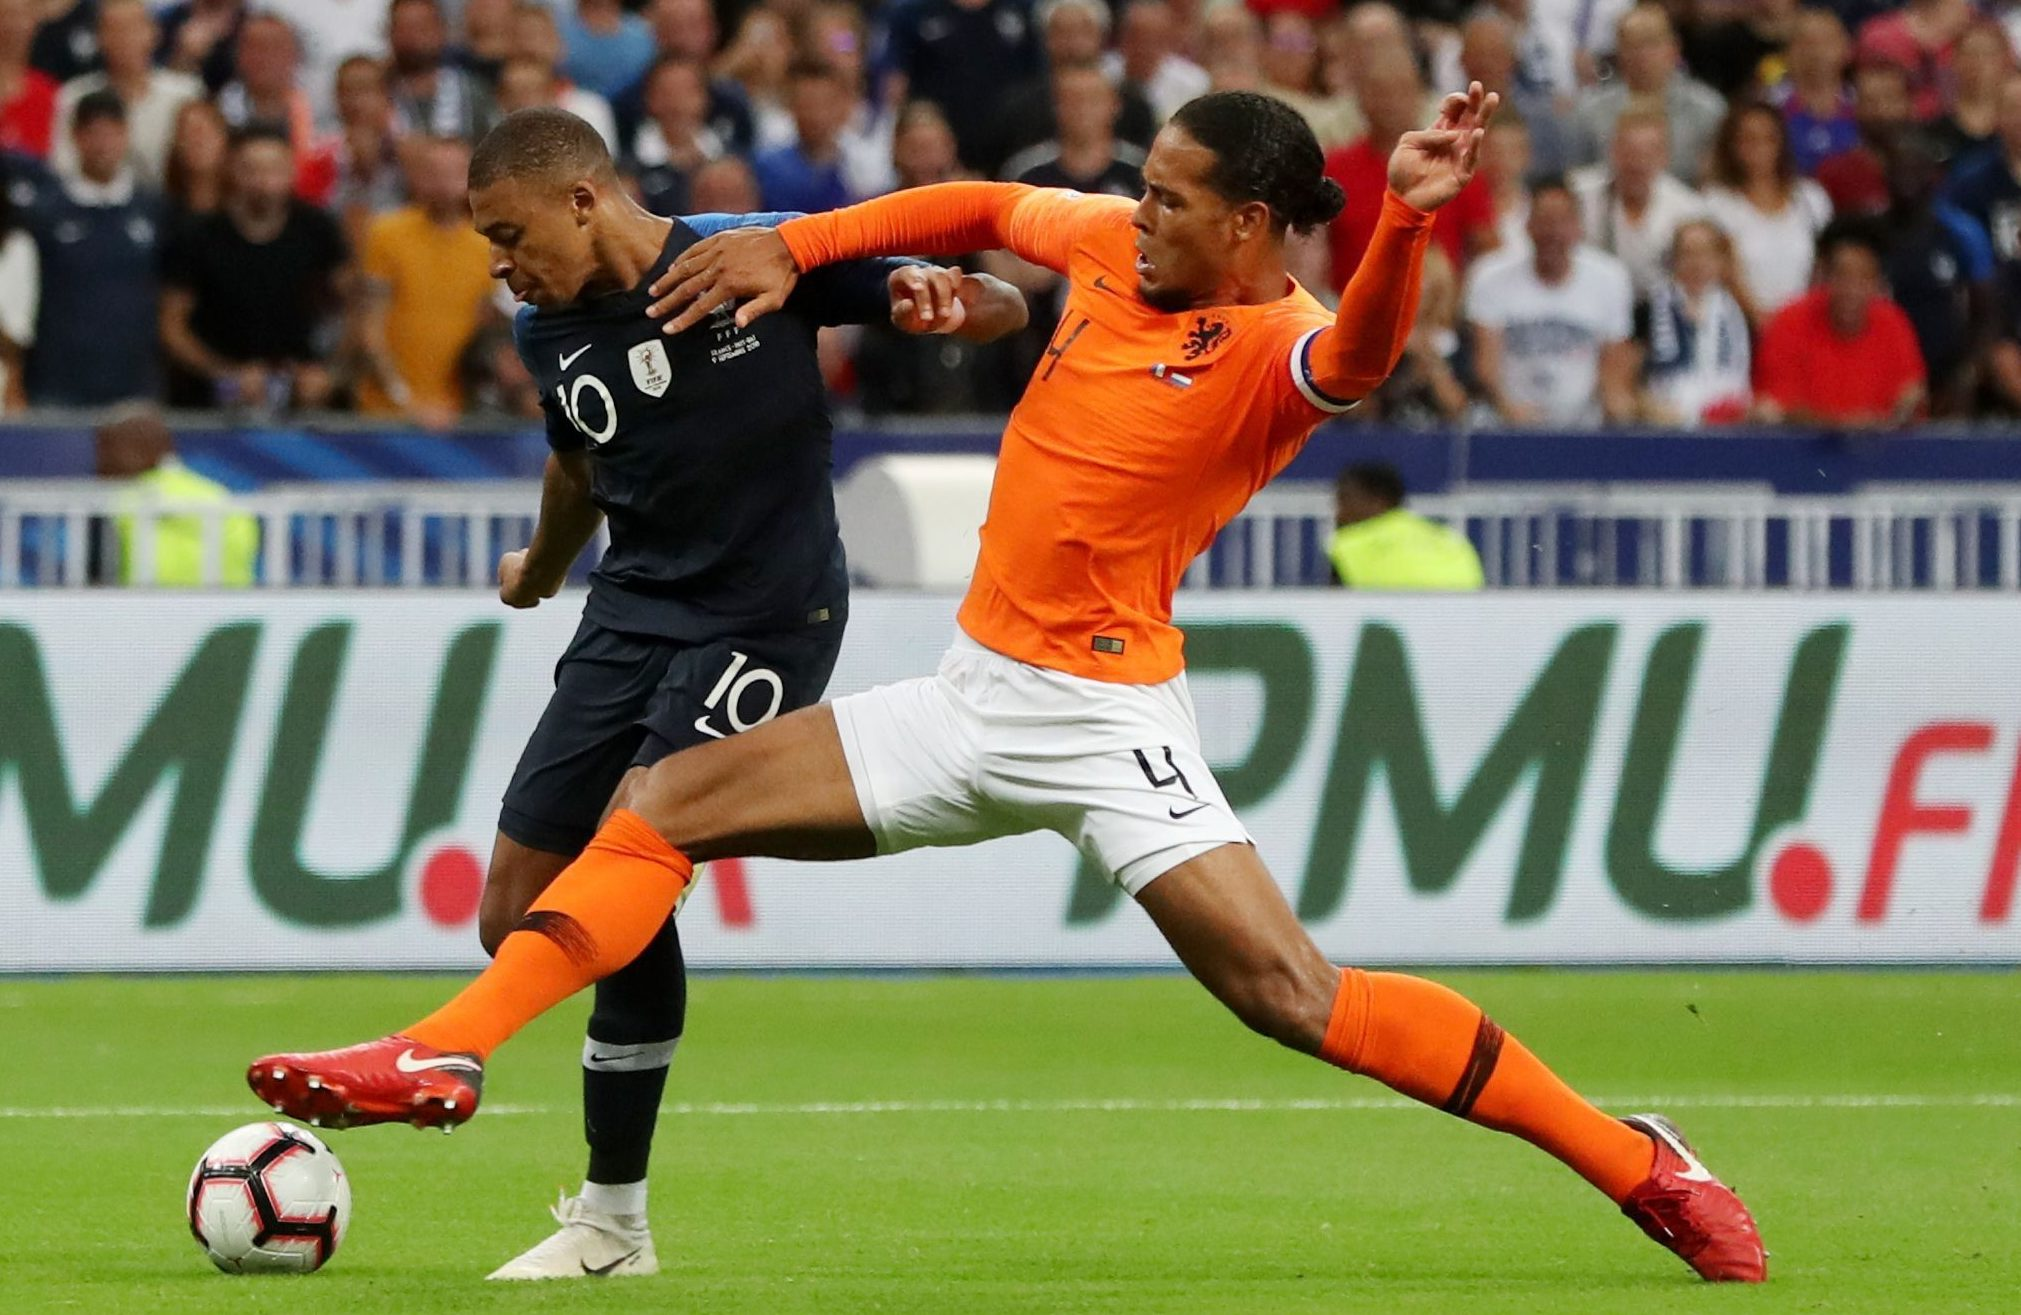 Liverpool fans hail Virgil van Dijk for his tackle on Kylian Mbappe in Netherlands' defeat to France